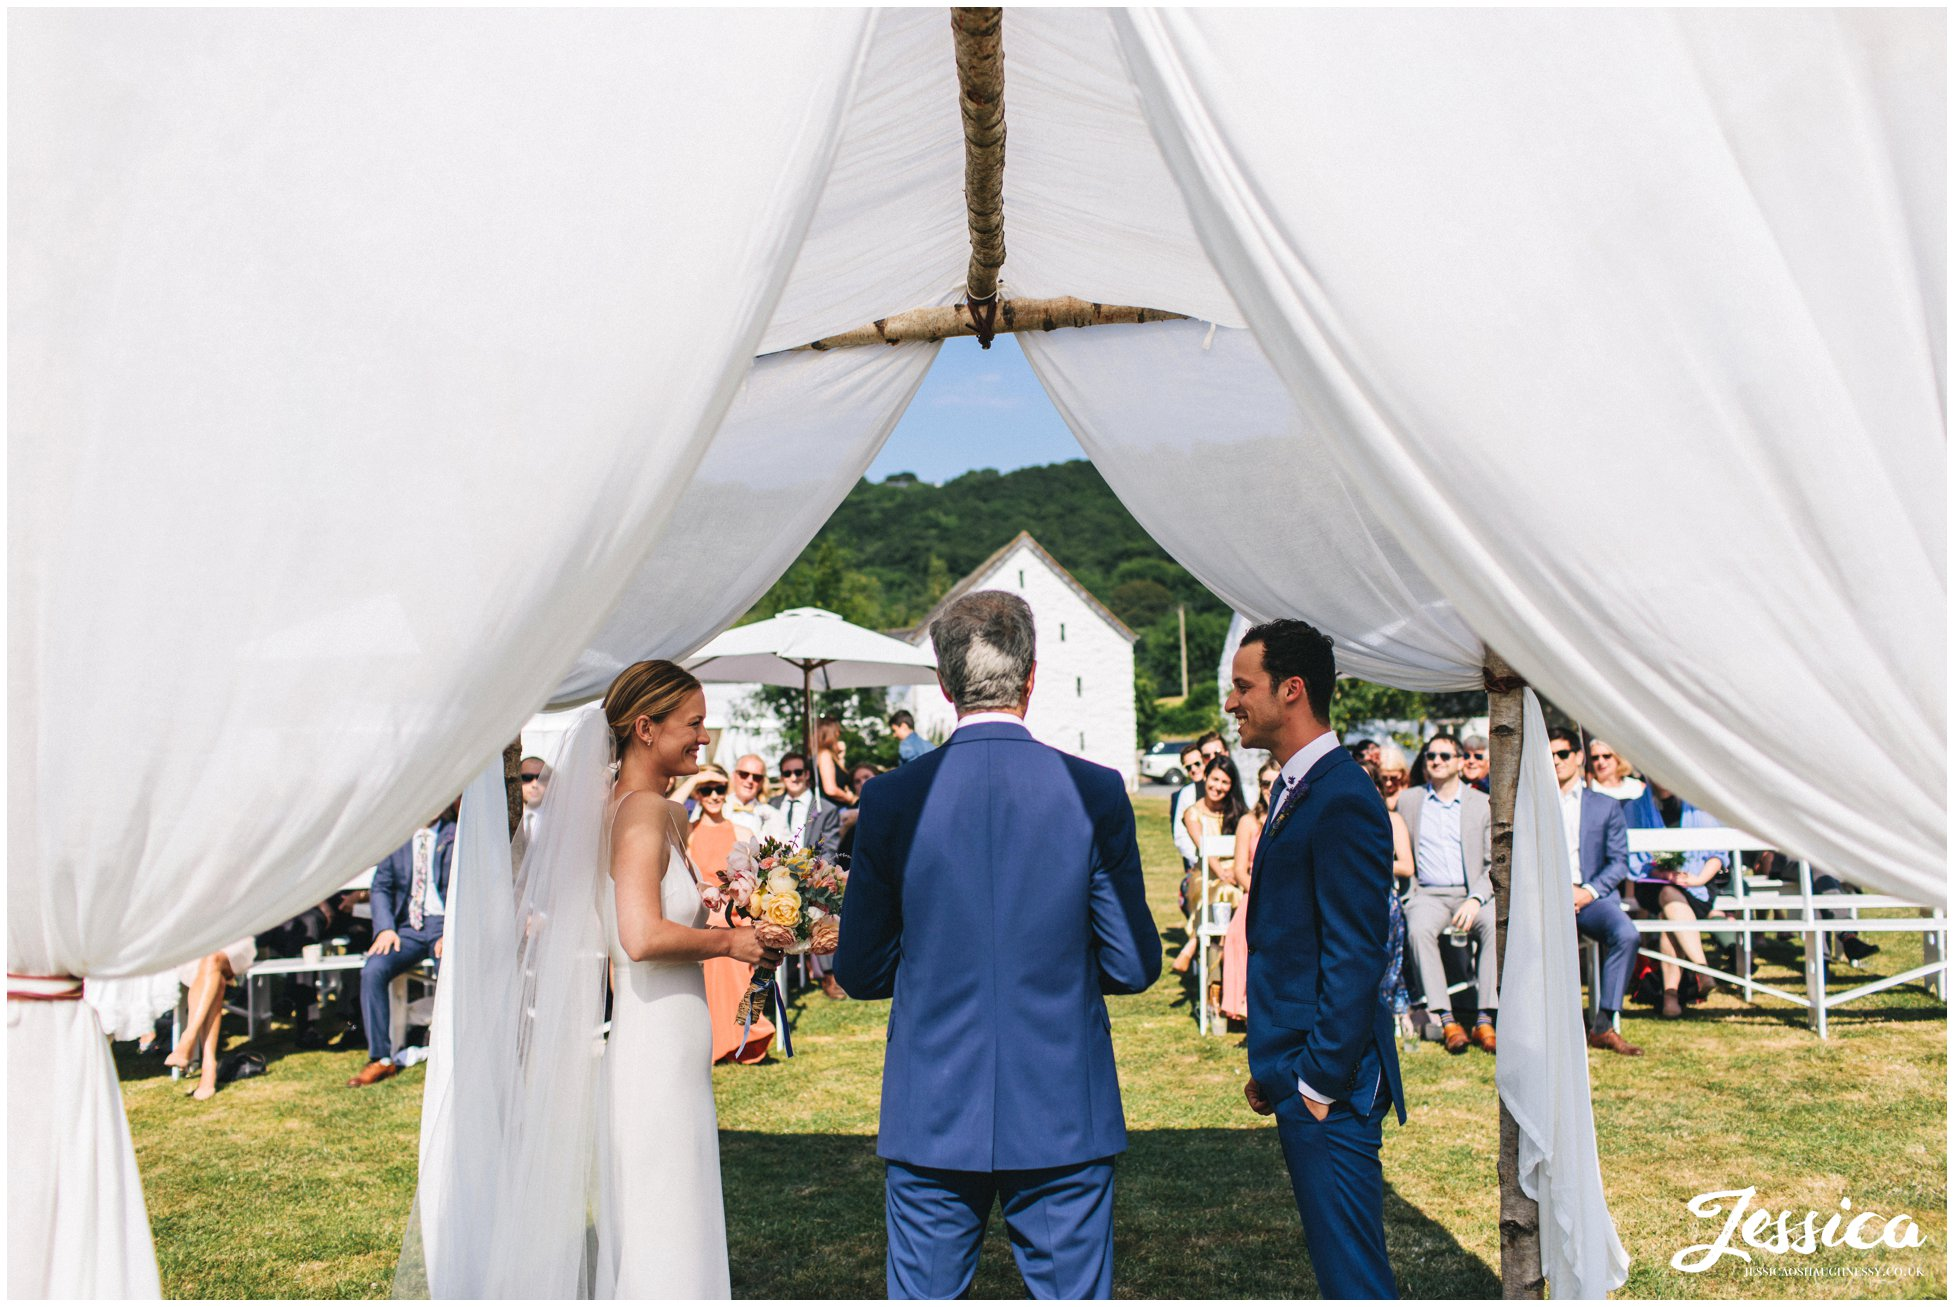 the couple have their wedding ceremony under the chuppah